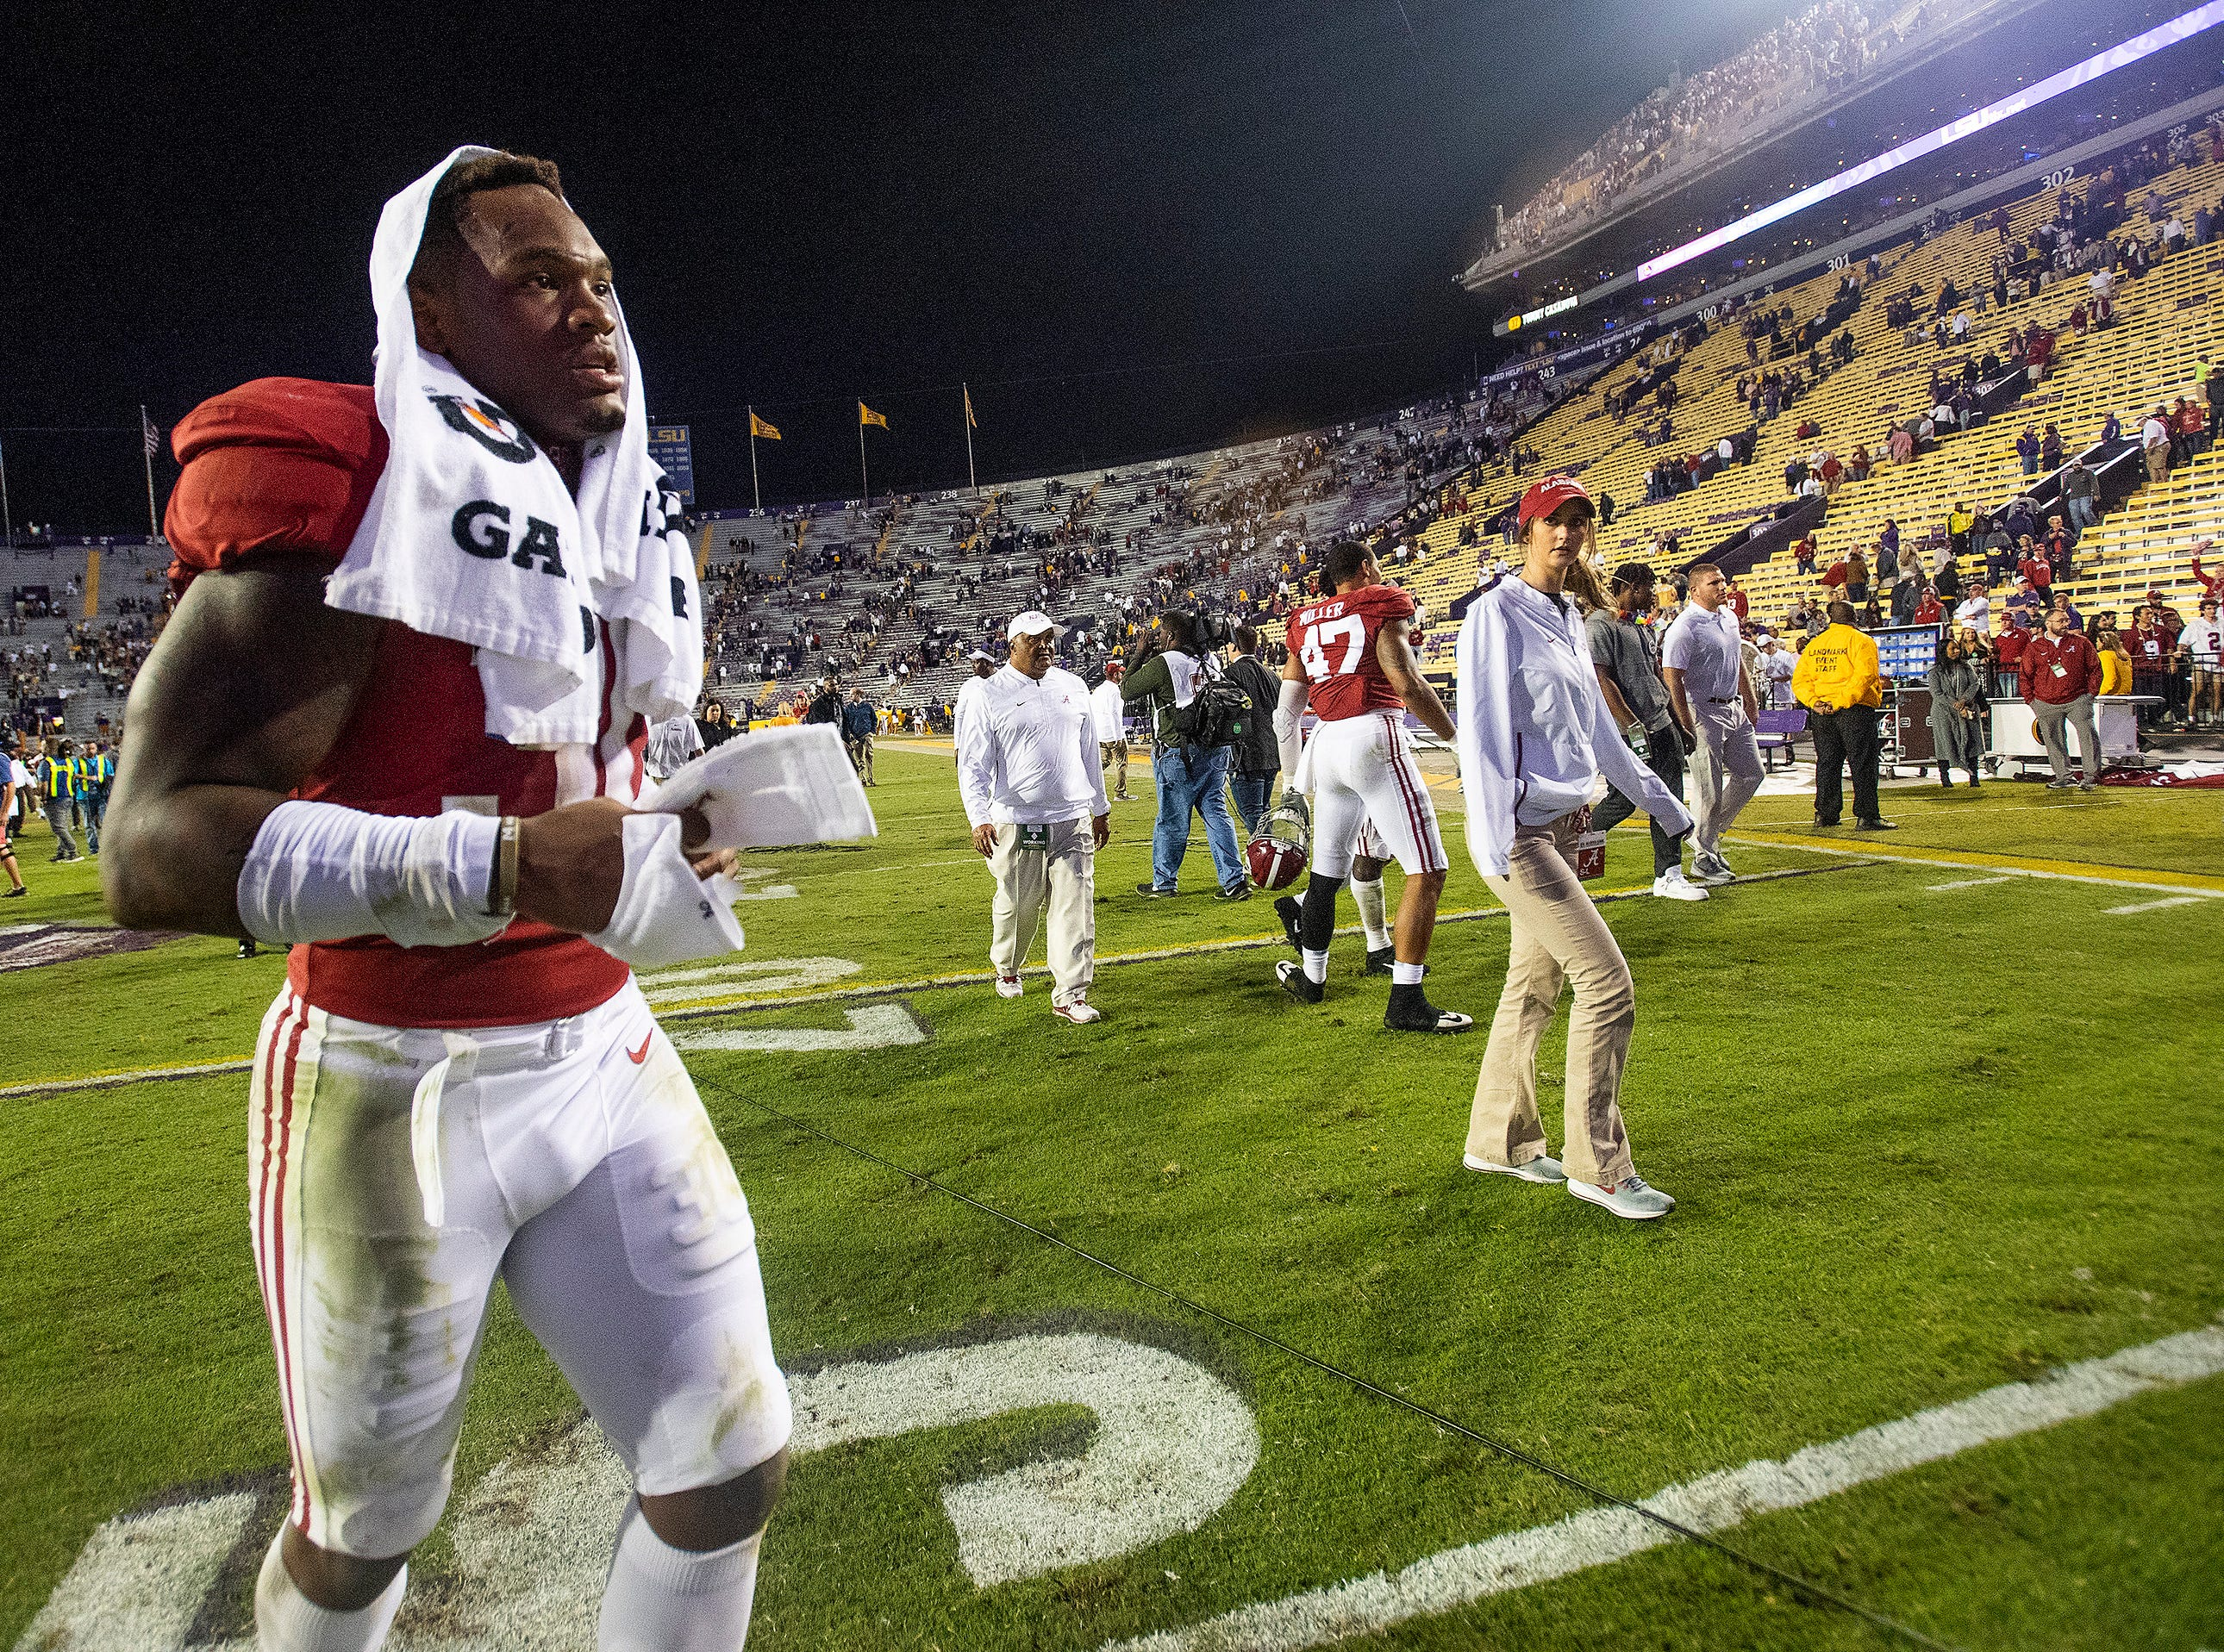 Alabama linebacker Mack Wilson (30) runs off the field after defeating LSU at Tiger Stadium in Baton Rouge, La., on Saturday November 3, 2018.